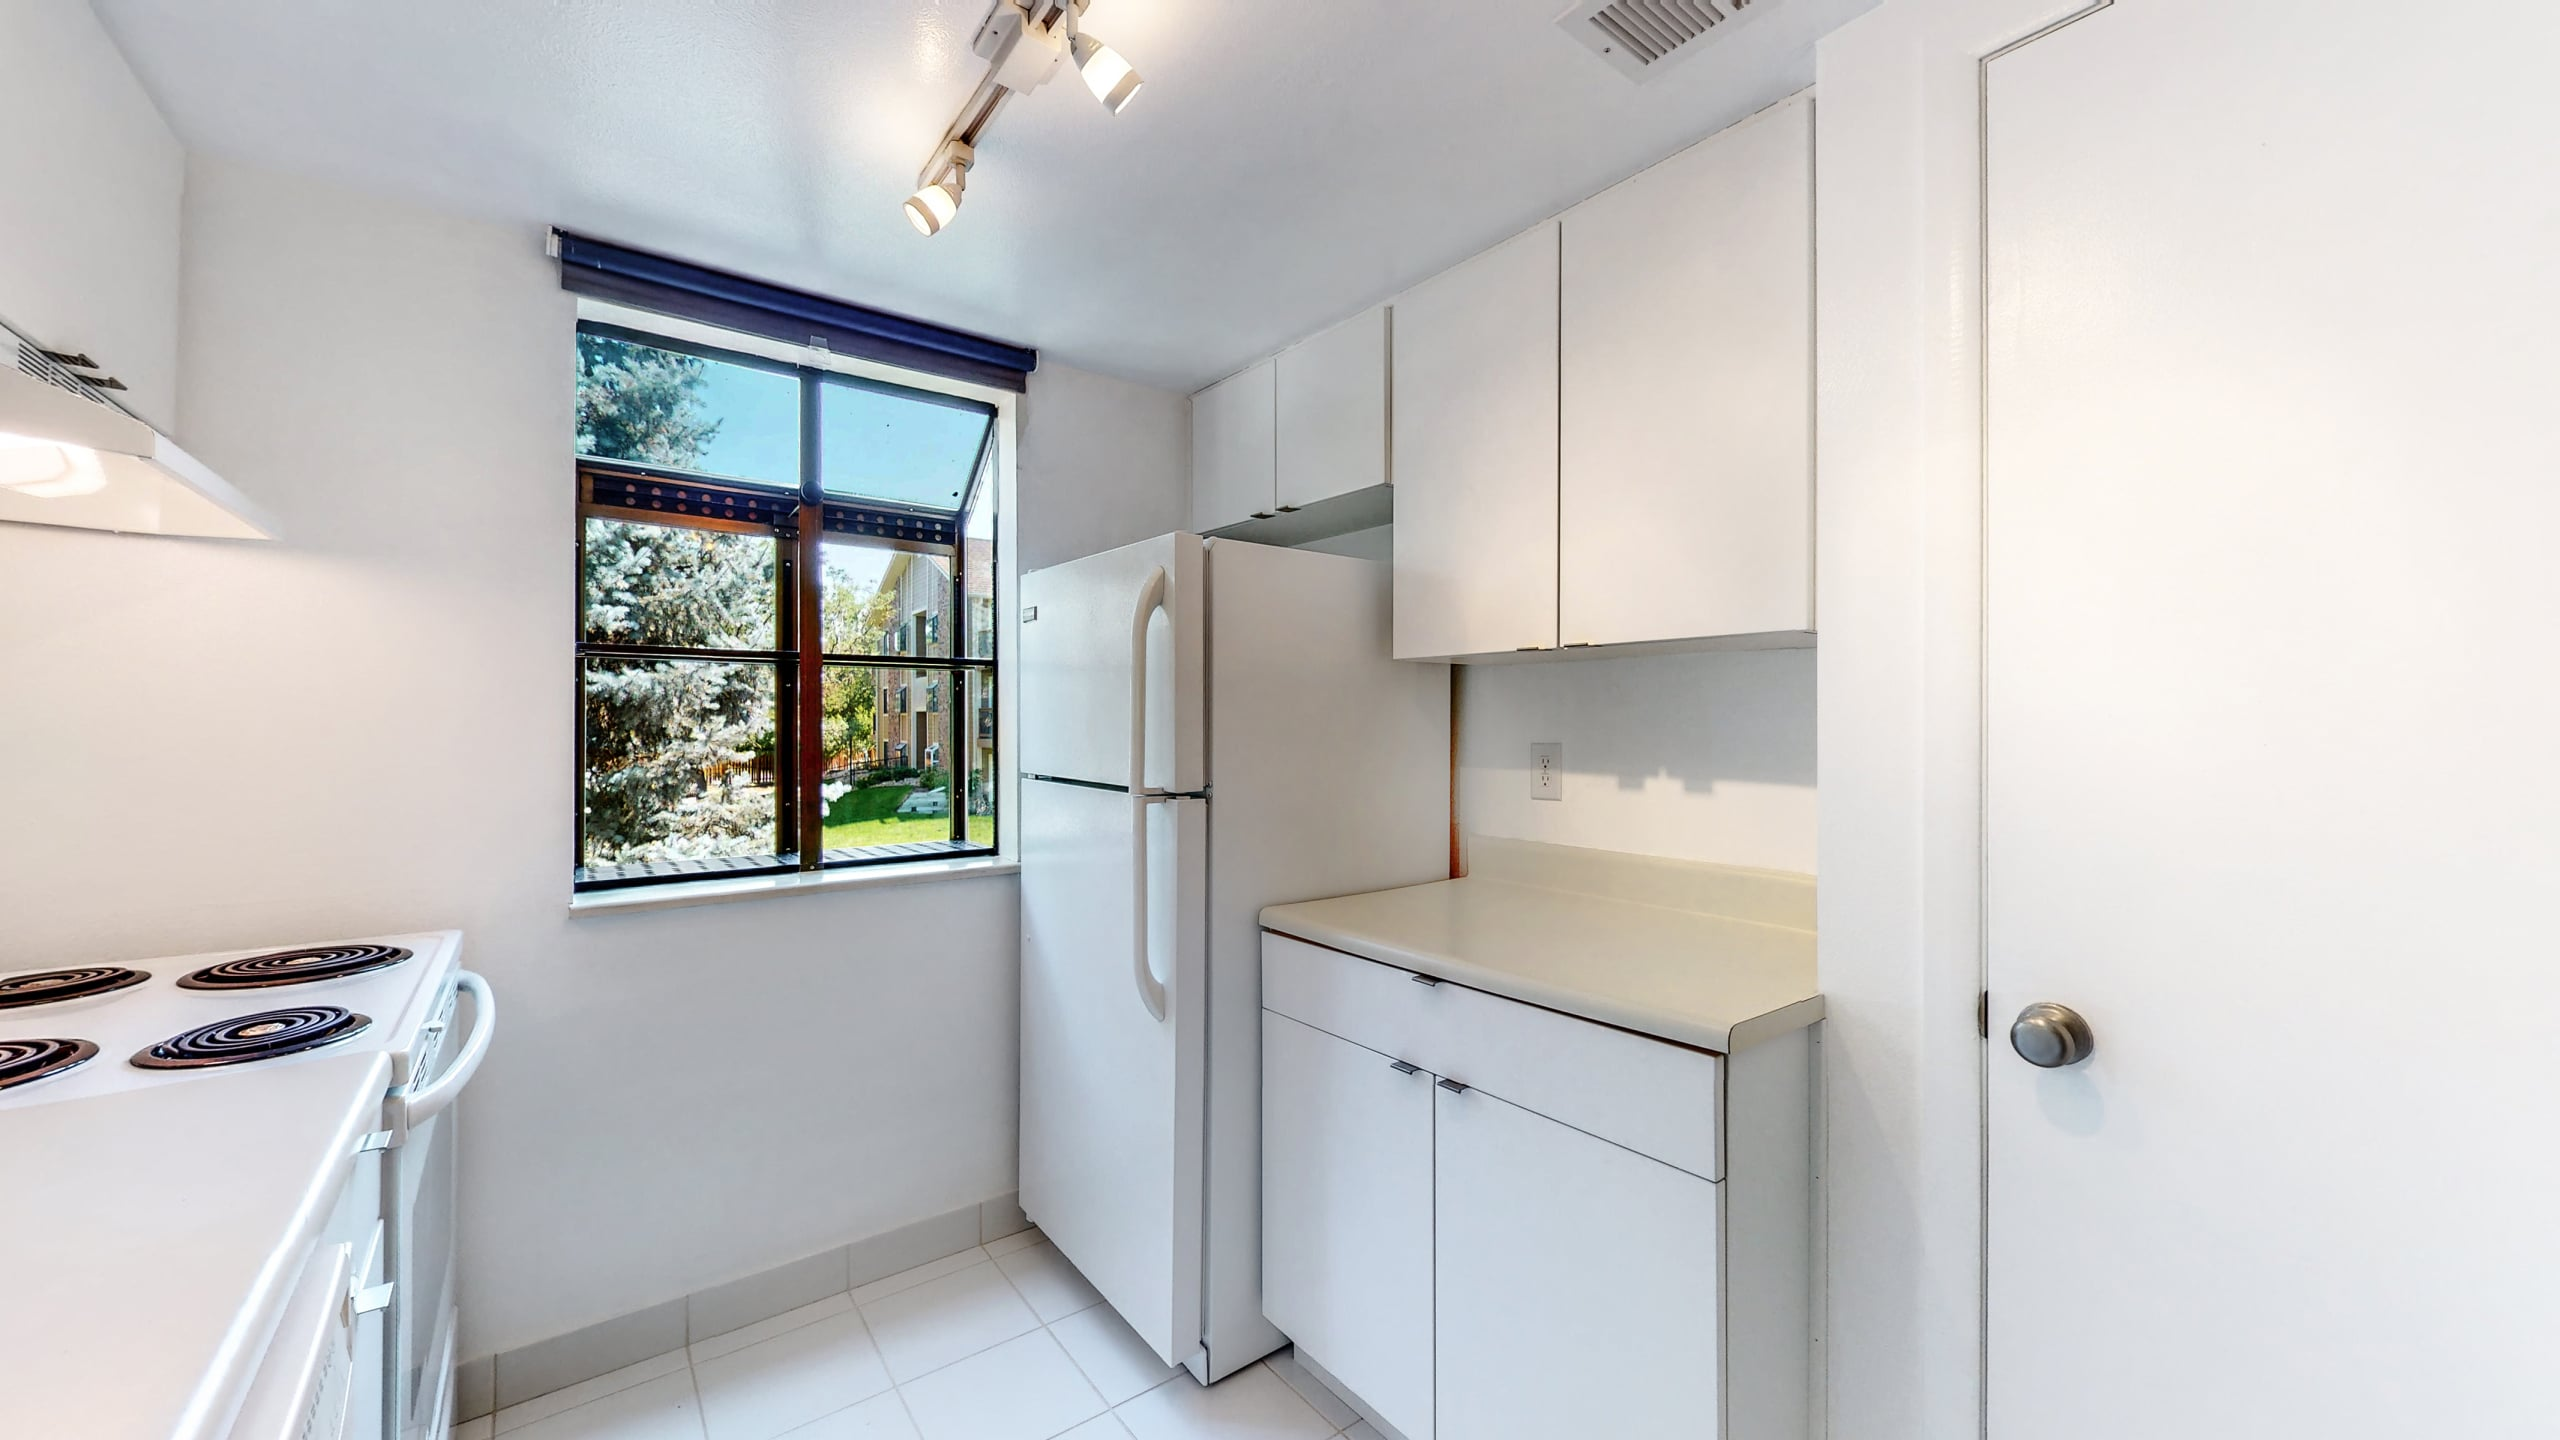 Very Clean Kitchen, White Tile Floors, White Cabinets, Condo For Sale